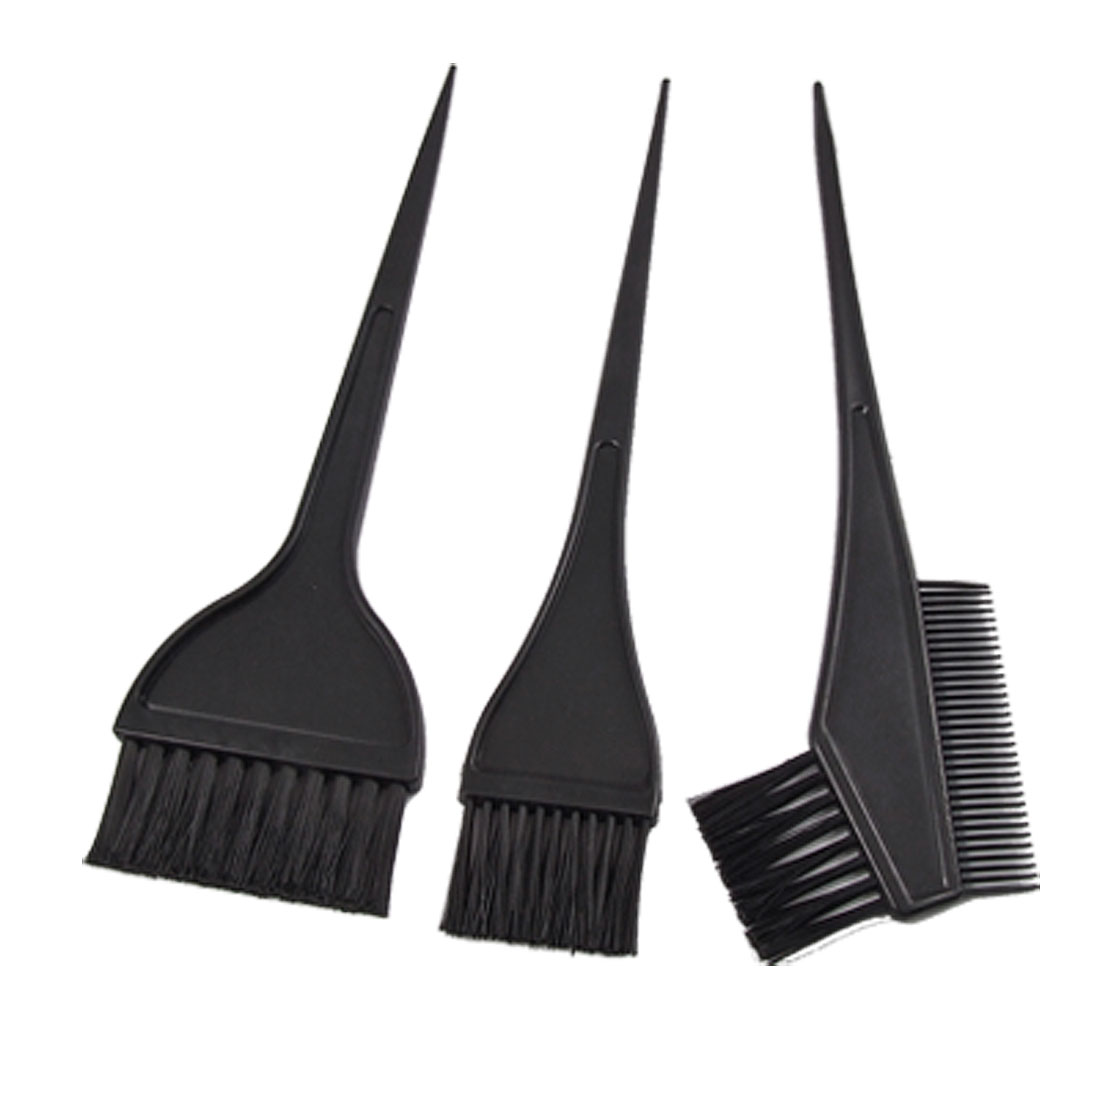 Hair Color Tint Dye Brush Salon Comb Set Tool New 3 in 1